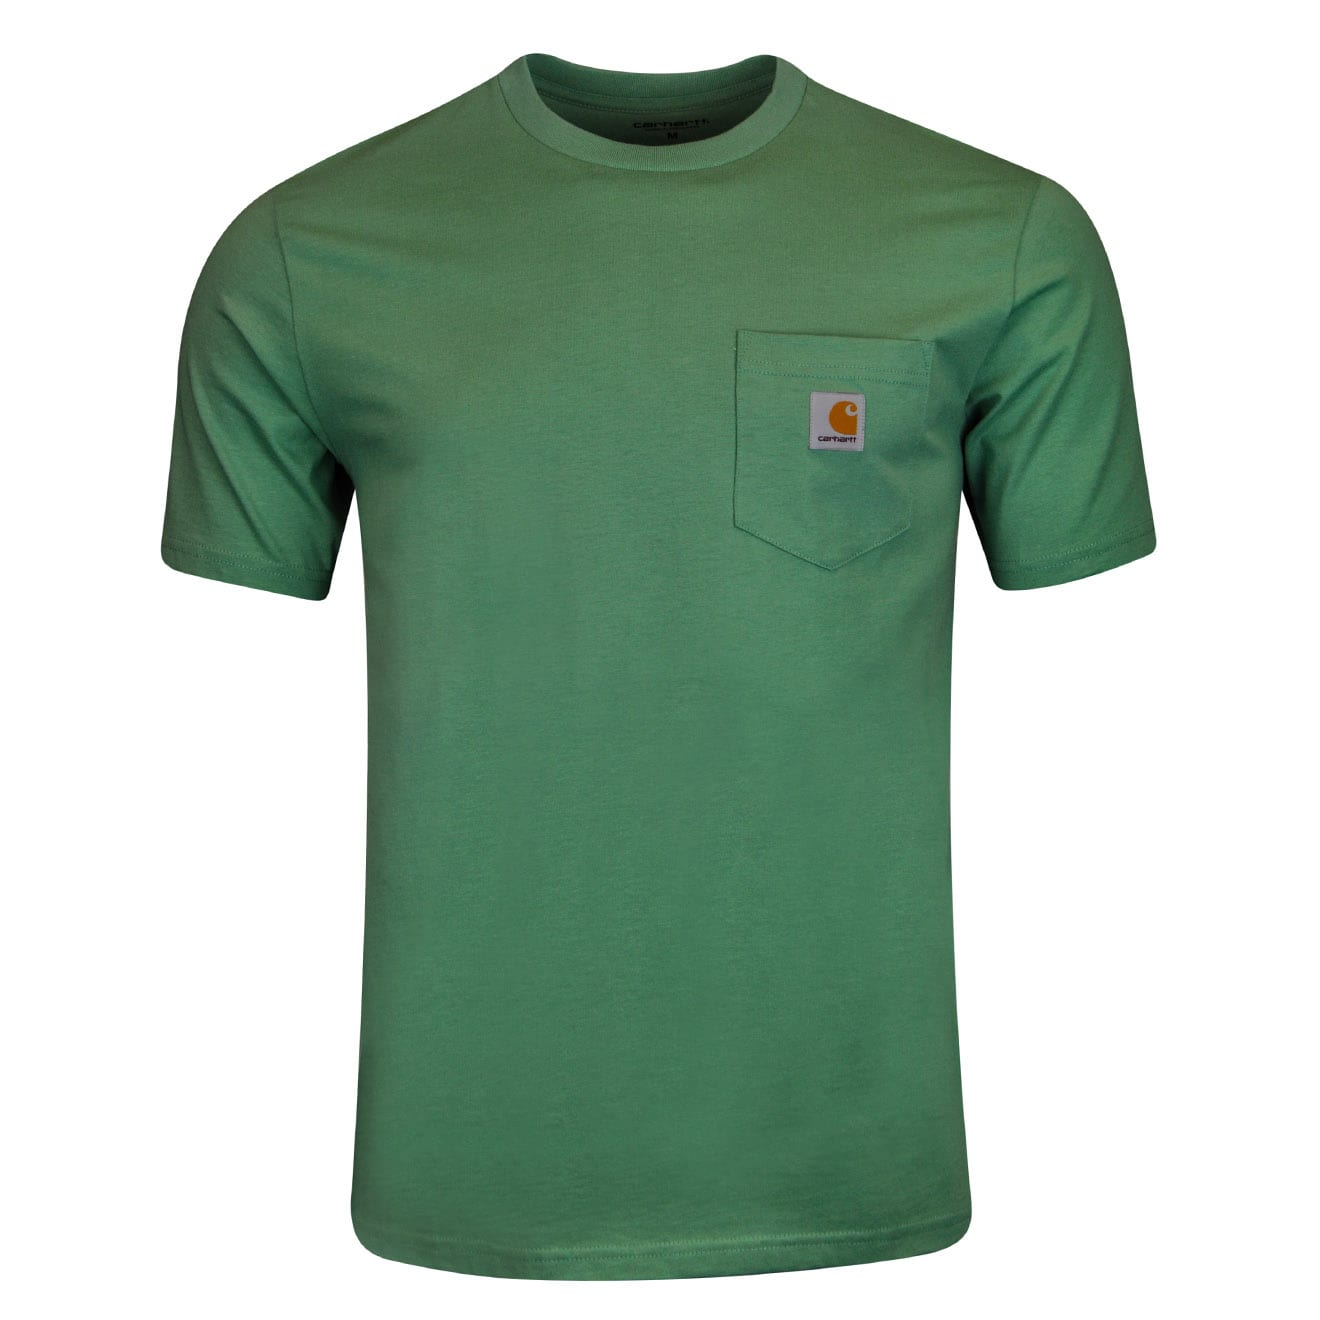 Carhartt pocket t shirt the sporting lodge for Carhartt tee shirts sale